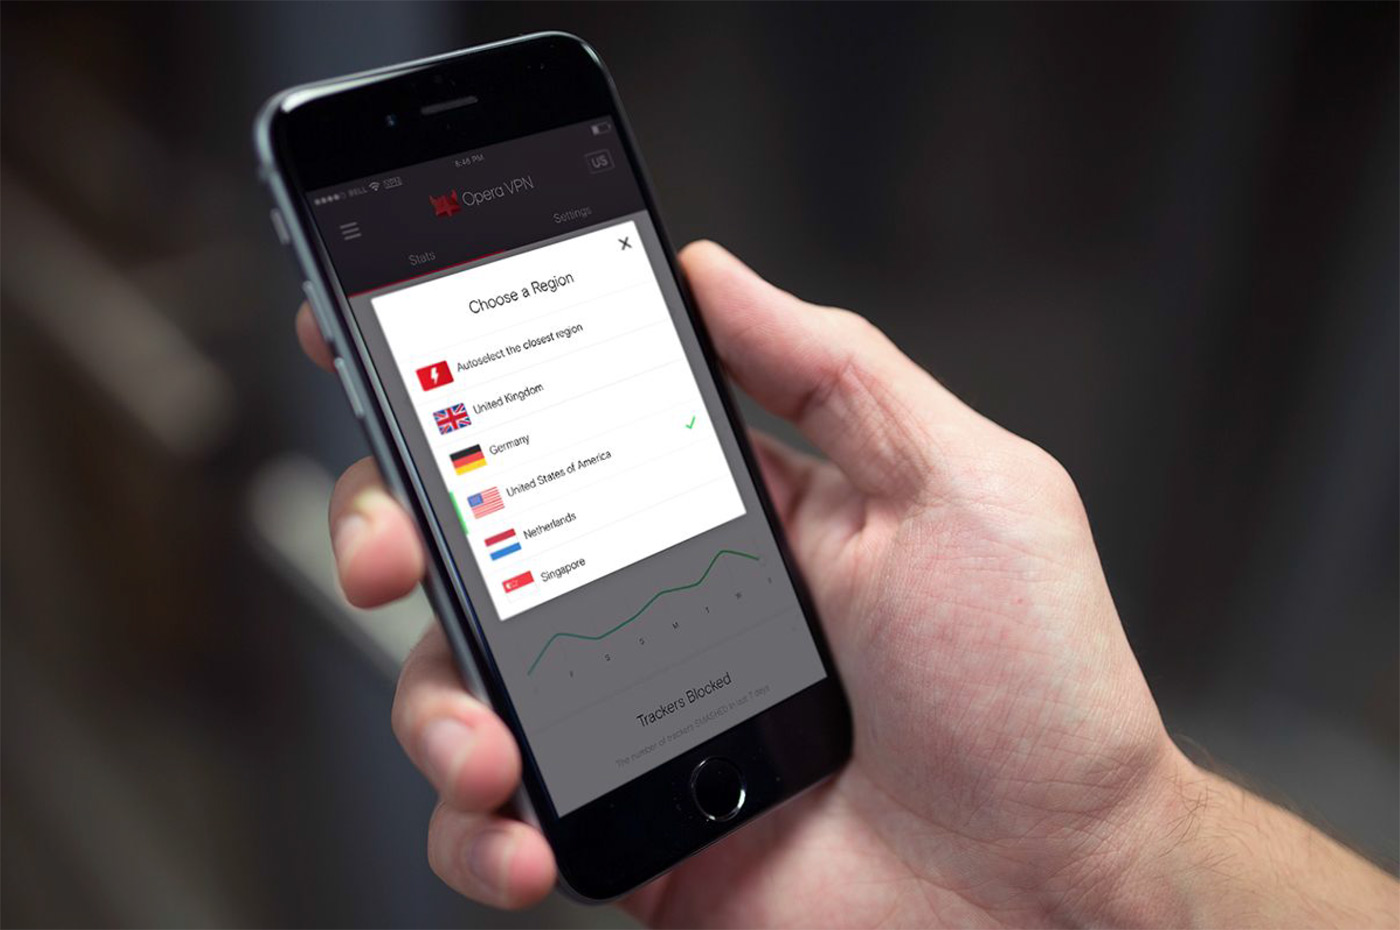 Opera's free VPN for iOS offers more control over your browsing